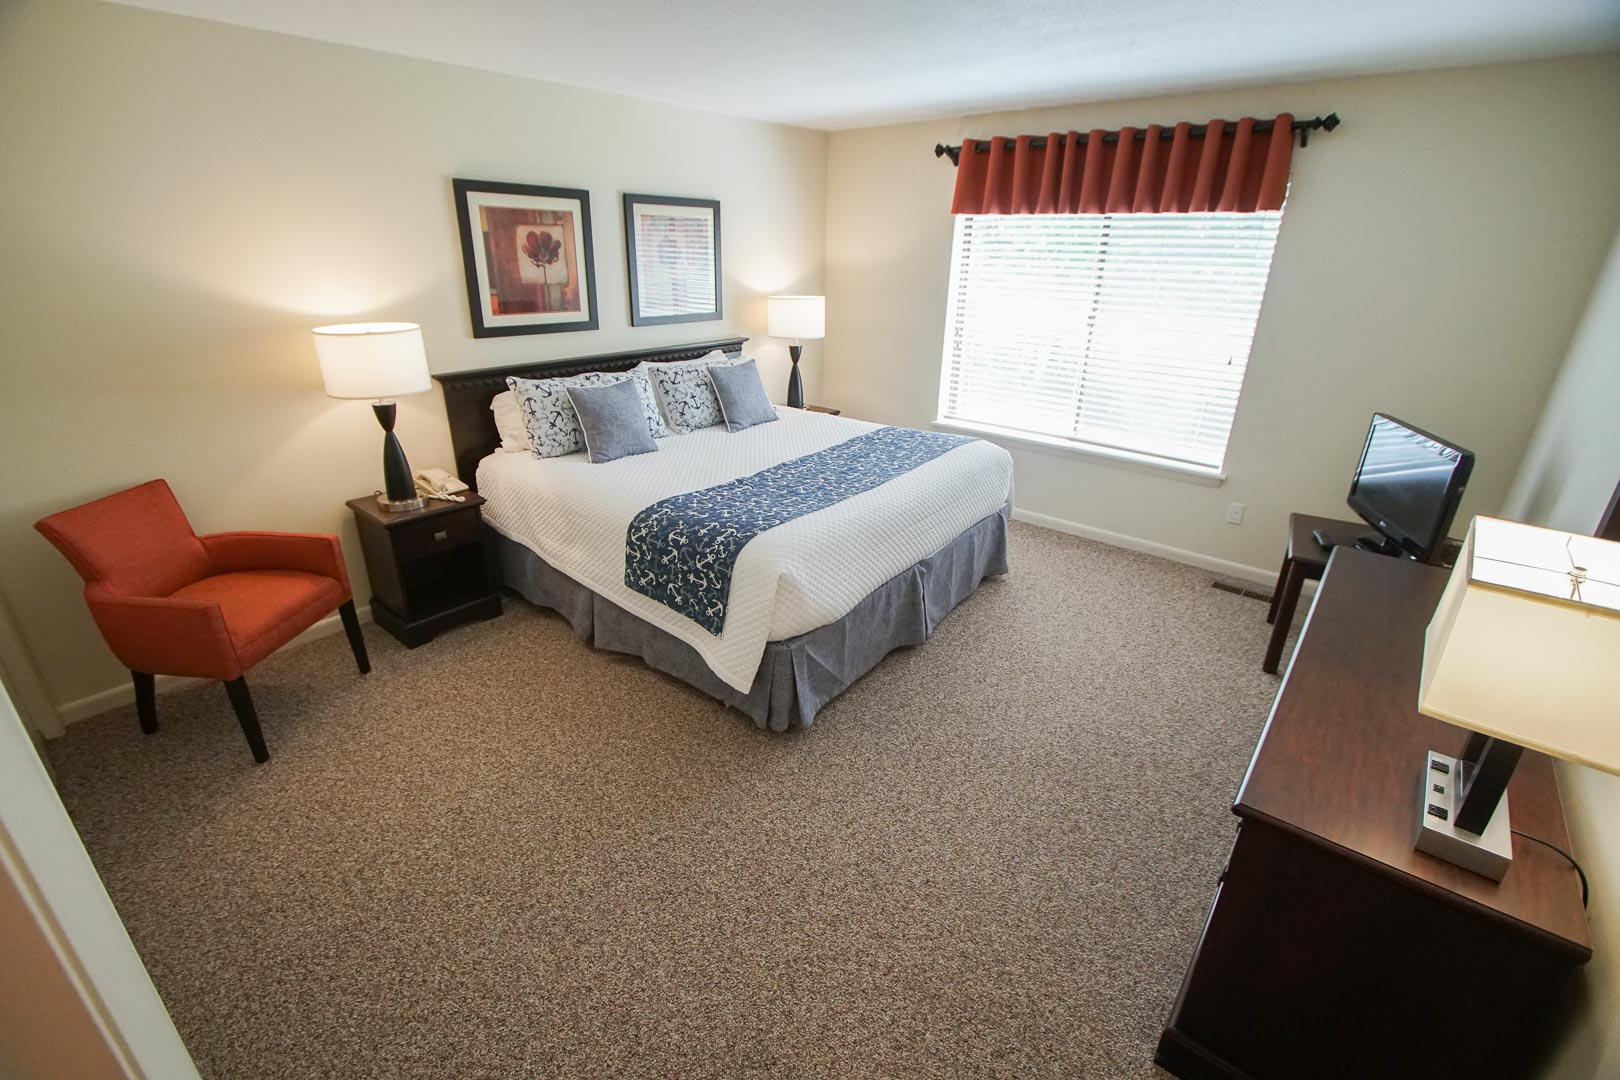 A spacious master bedroom at VRI's Brewster Green Resort in Massachusetts.